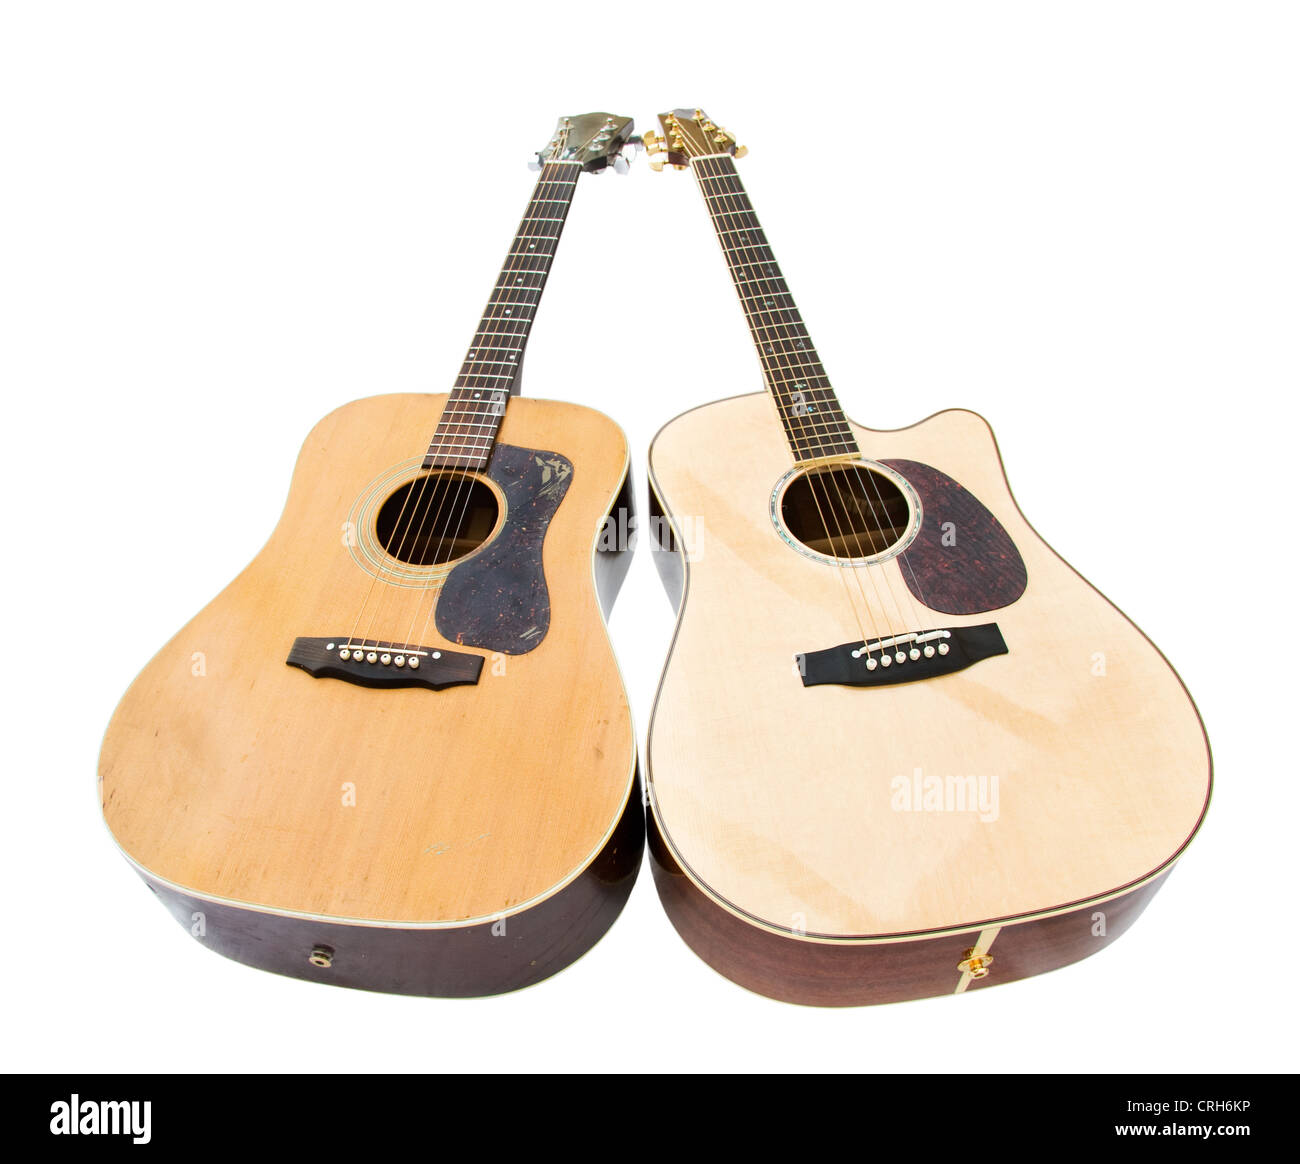 Pair of two acoustic guitars - old and new. Isolated over white background. - Stock Image